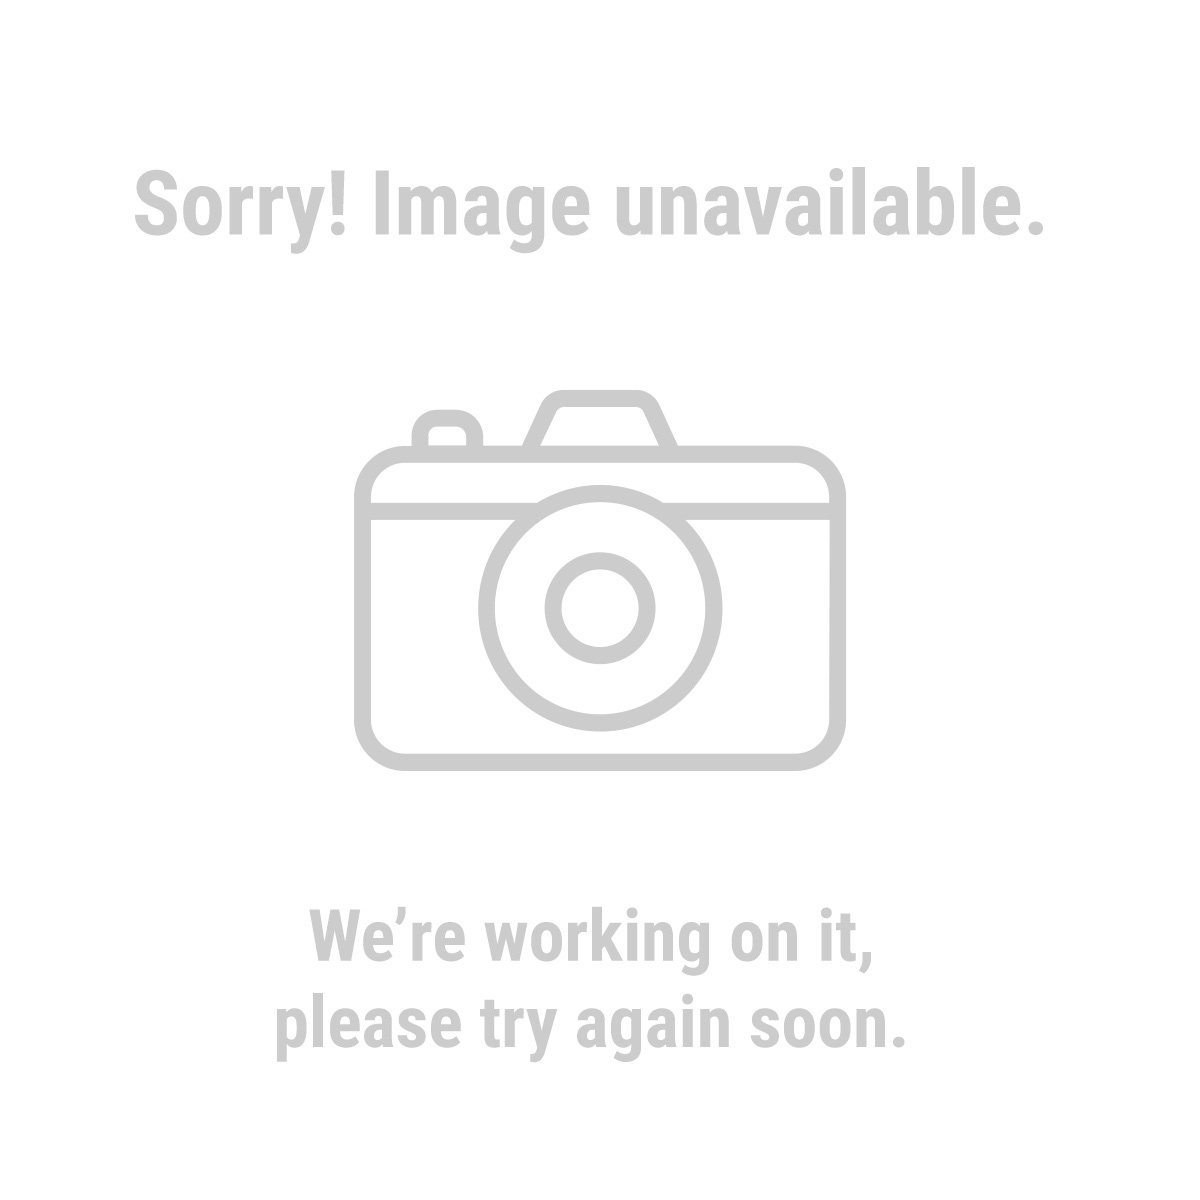 Chicago Electric 60287 50 Ft. x 14 Gauge Outdoor Extension Cord